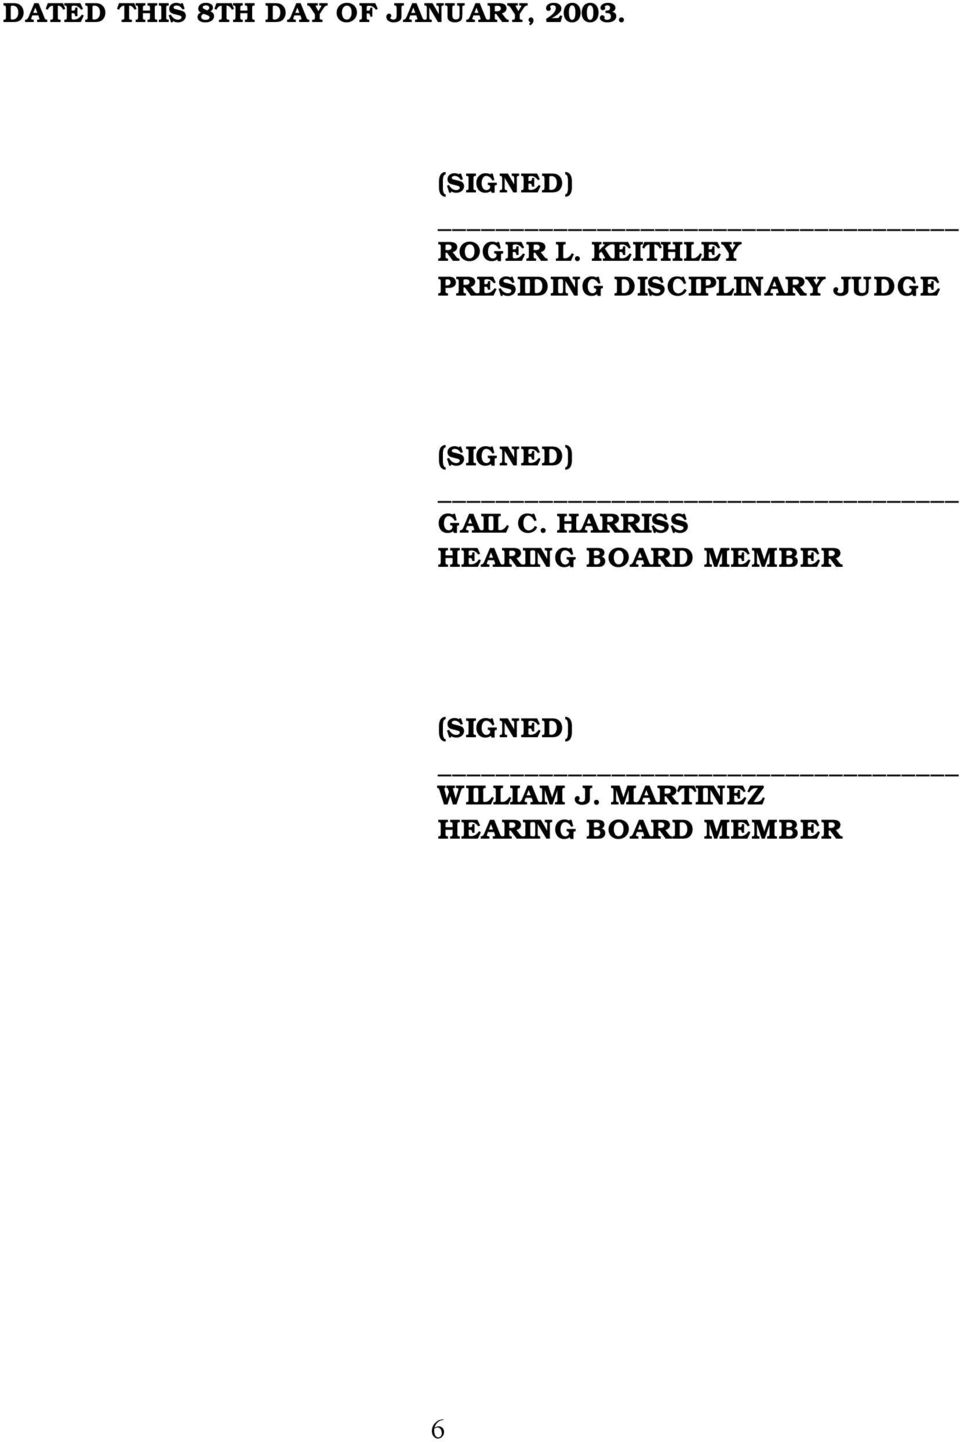 KEITHLEY PRESIDING DISCIPLINARY JUDGE (SIGNED)